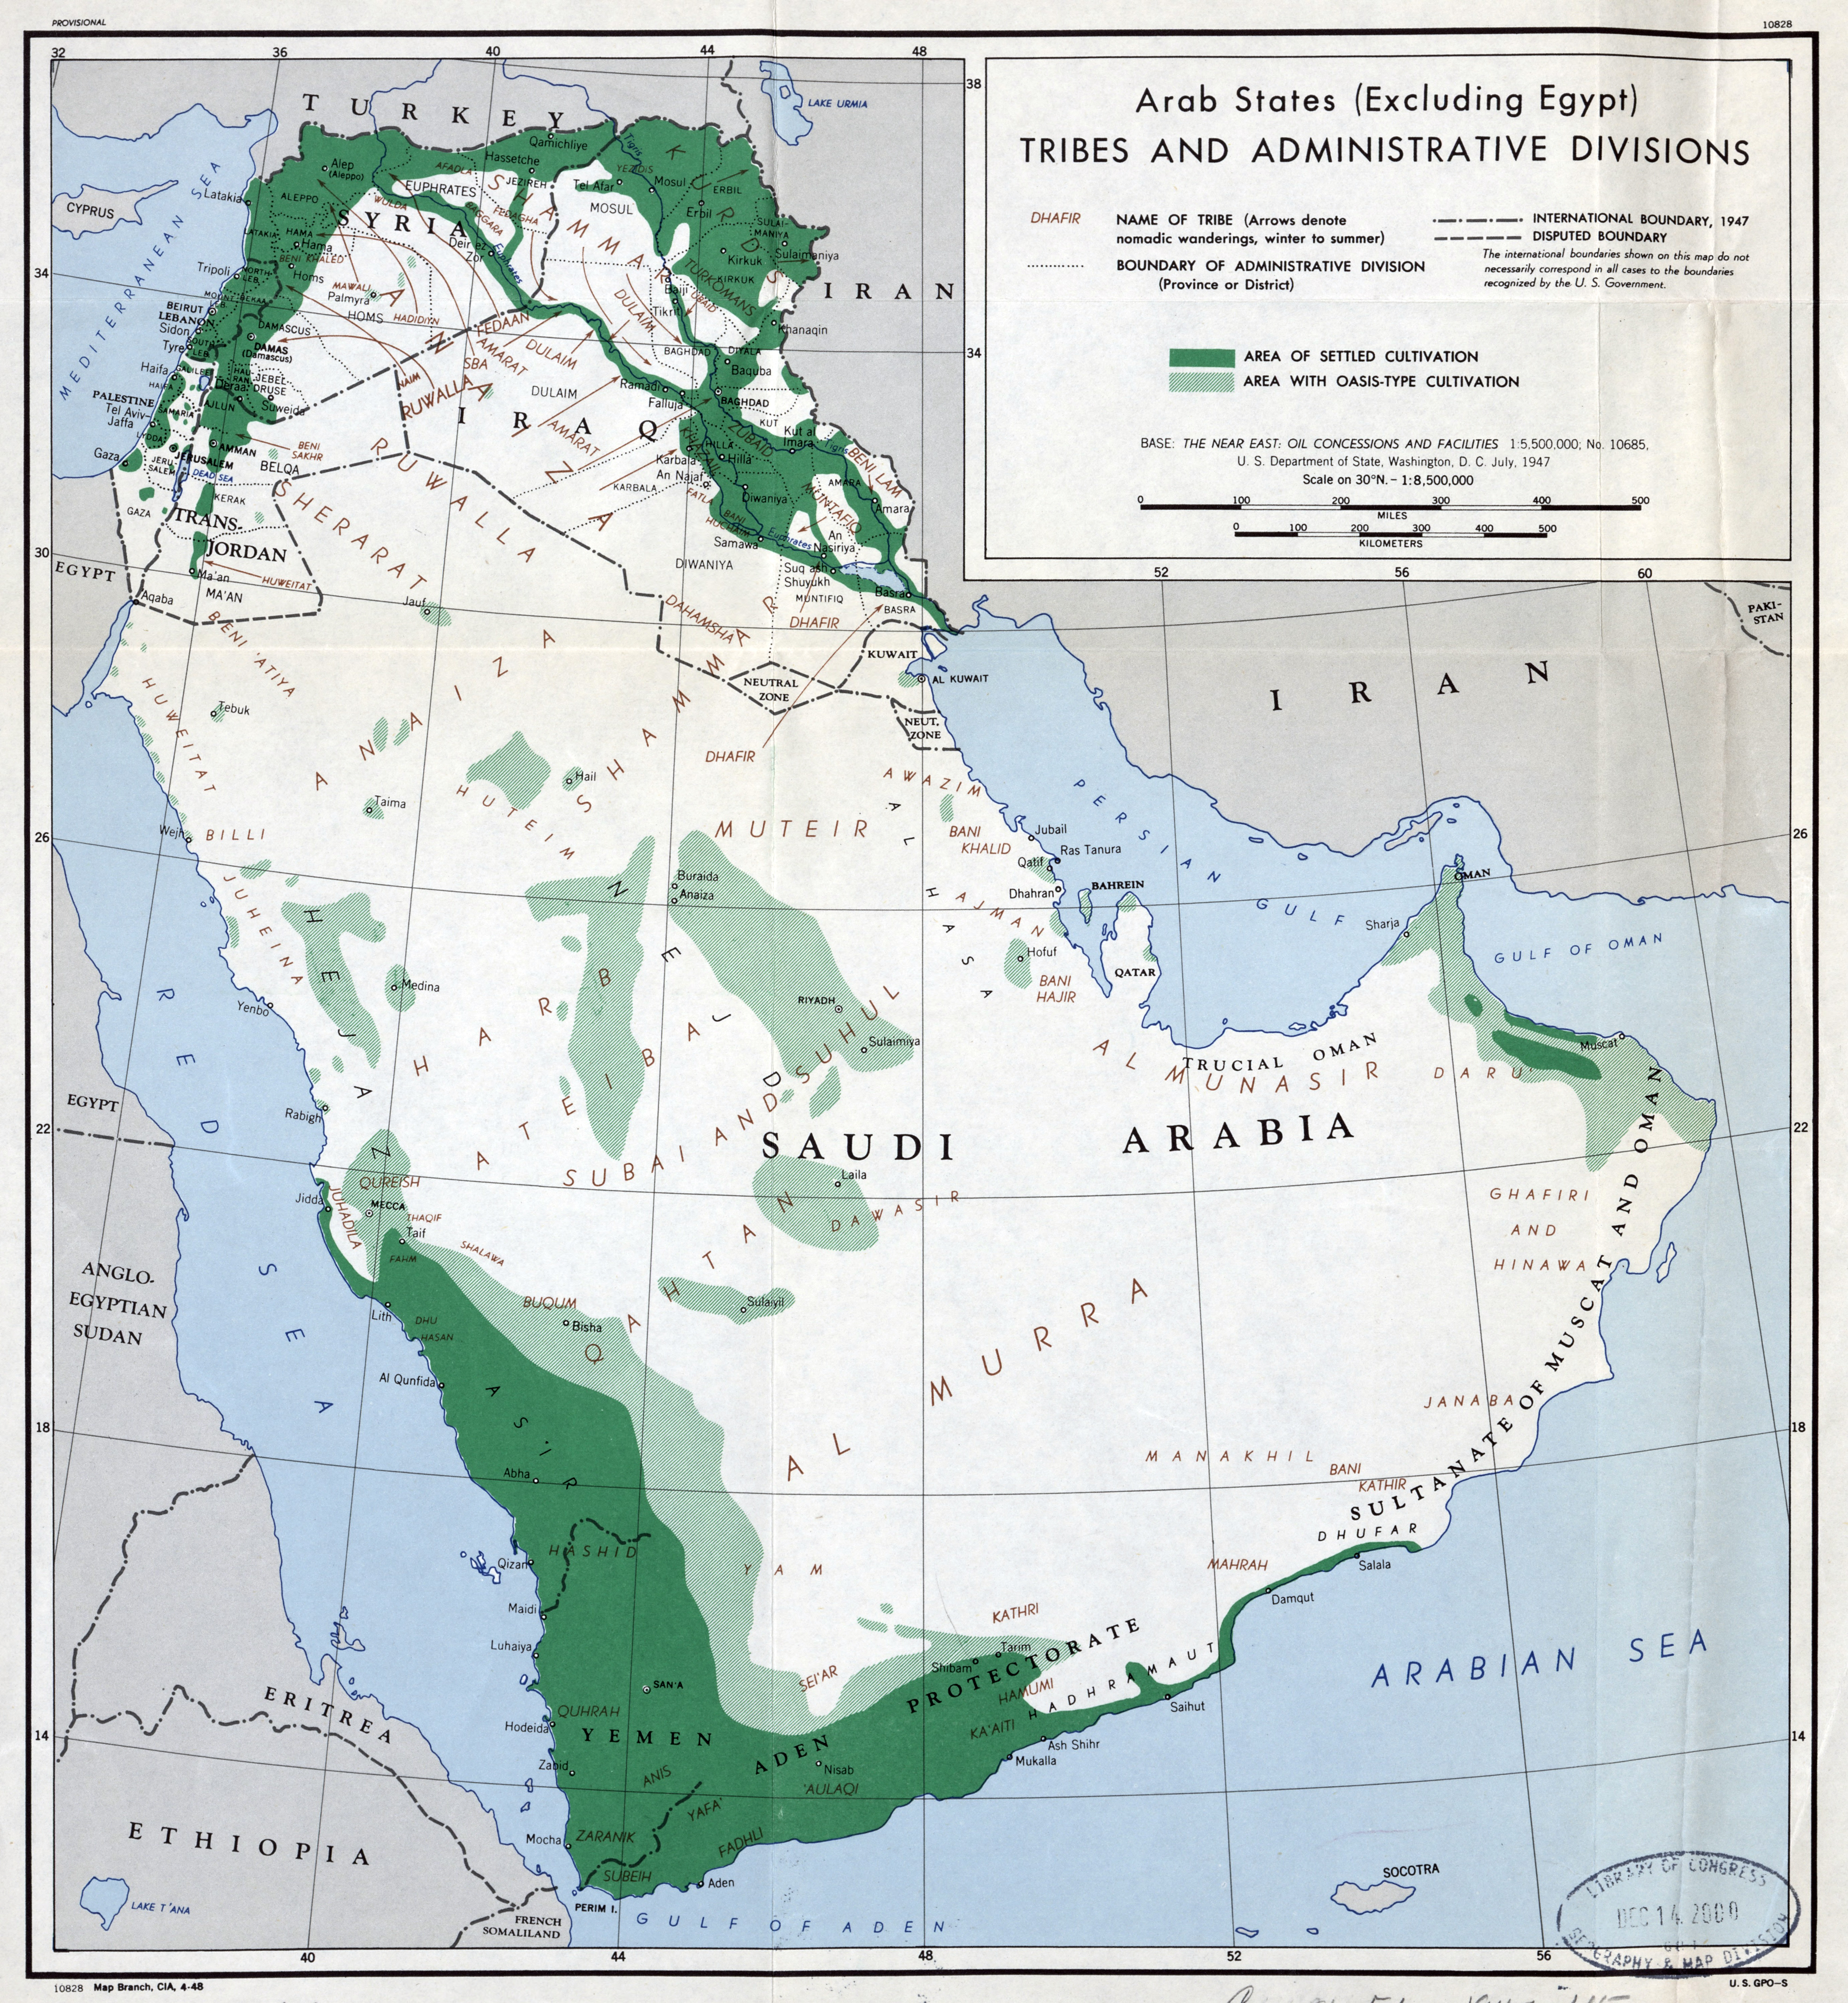 Large detailed Arab States Excluding Egypt tribes and